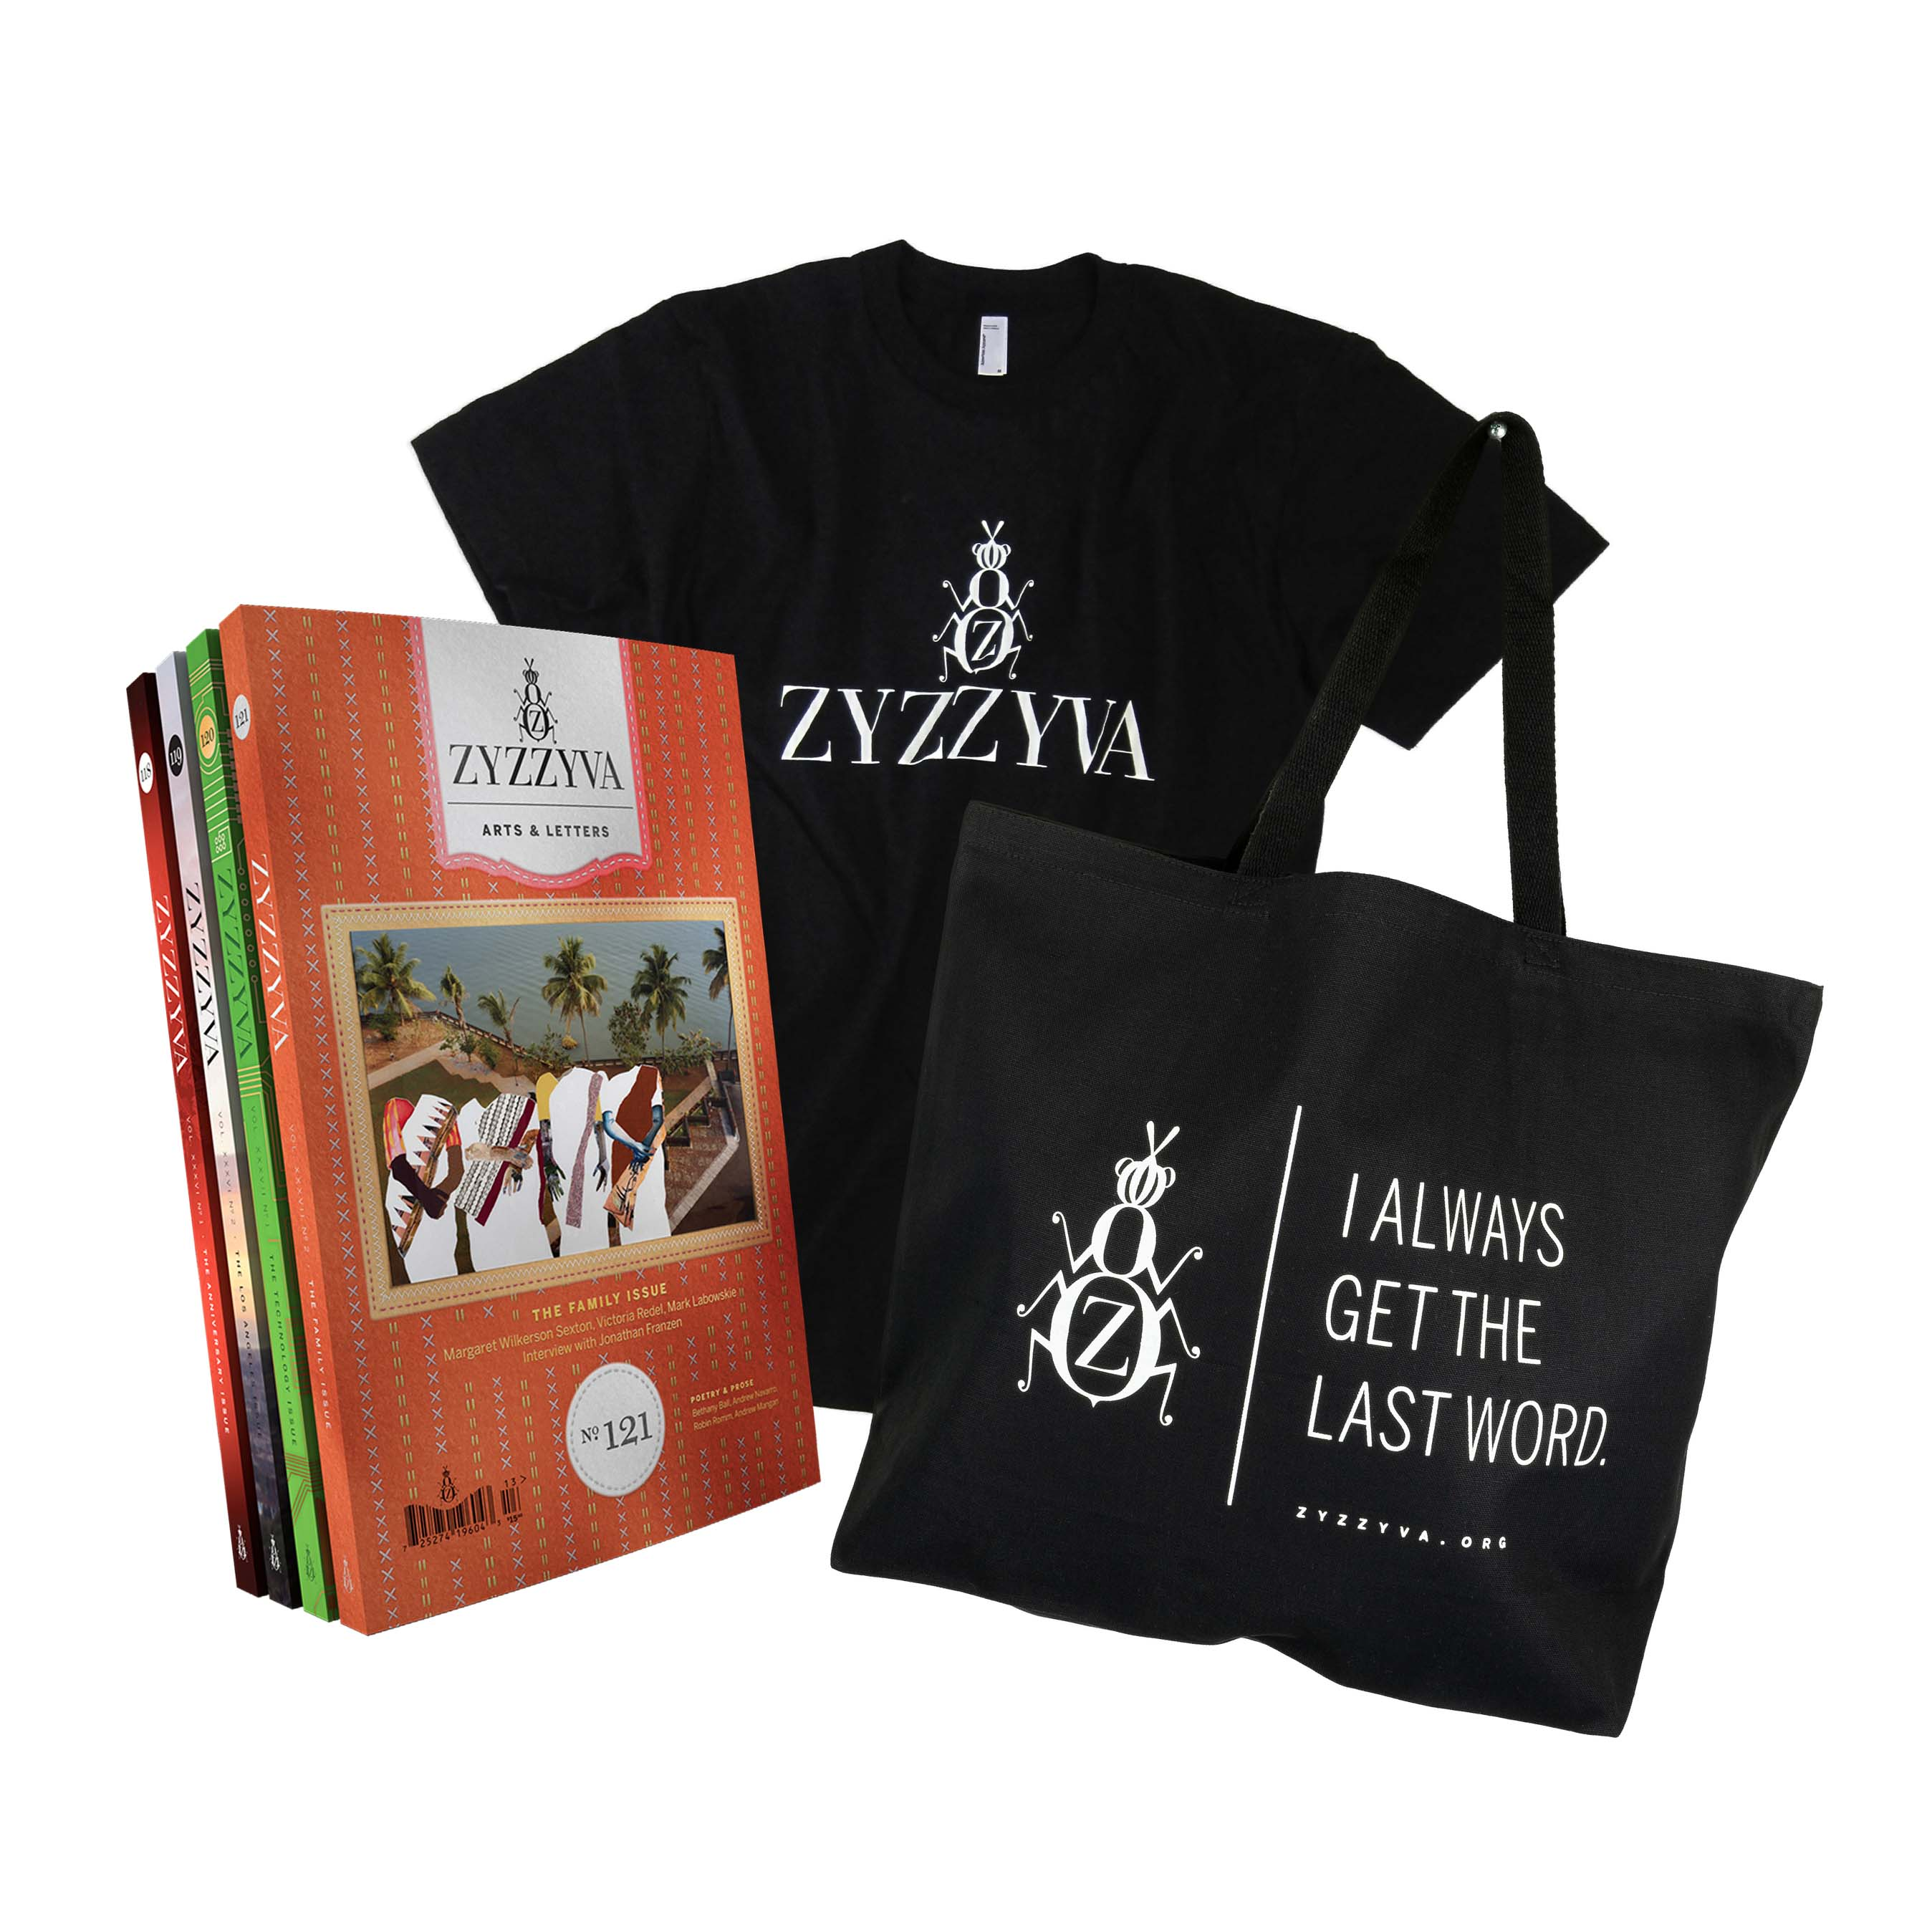 ZYZZYVA Essentials Bundle: T-Shirt, Tote Bag, and Subscription